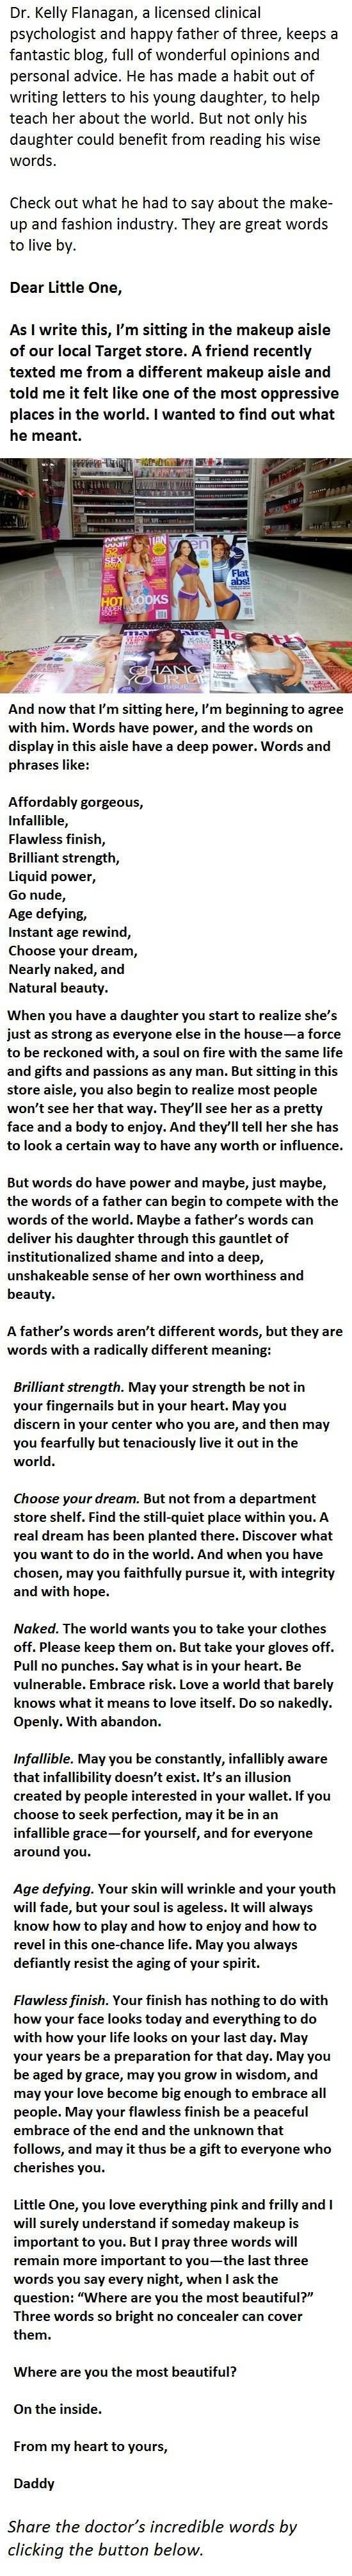 father world s greatest farter shirt beautiful awesome and messages a father s message to his daughter about inner beauty and grace so wonderful